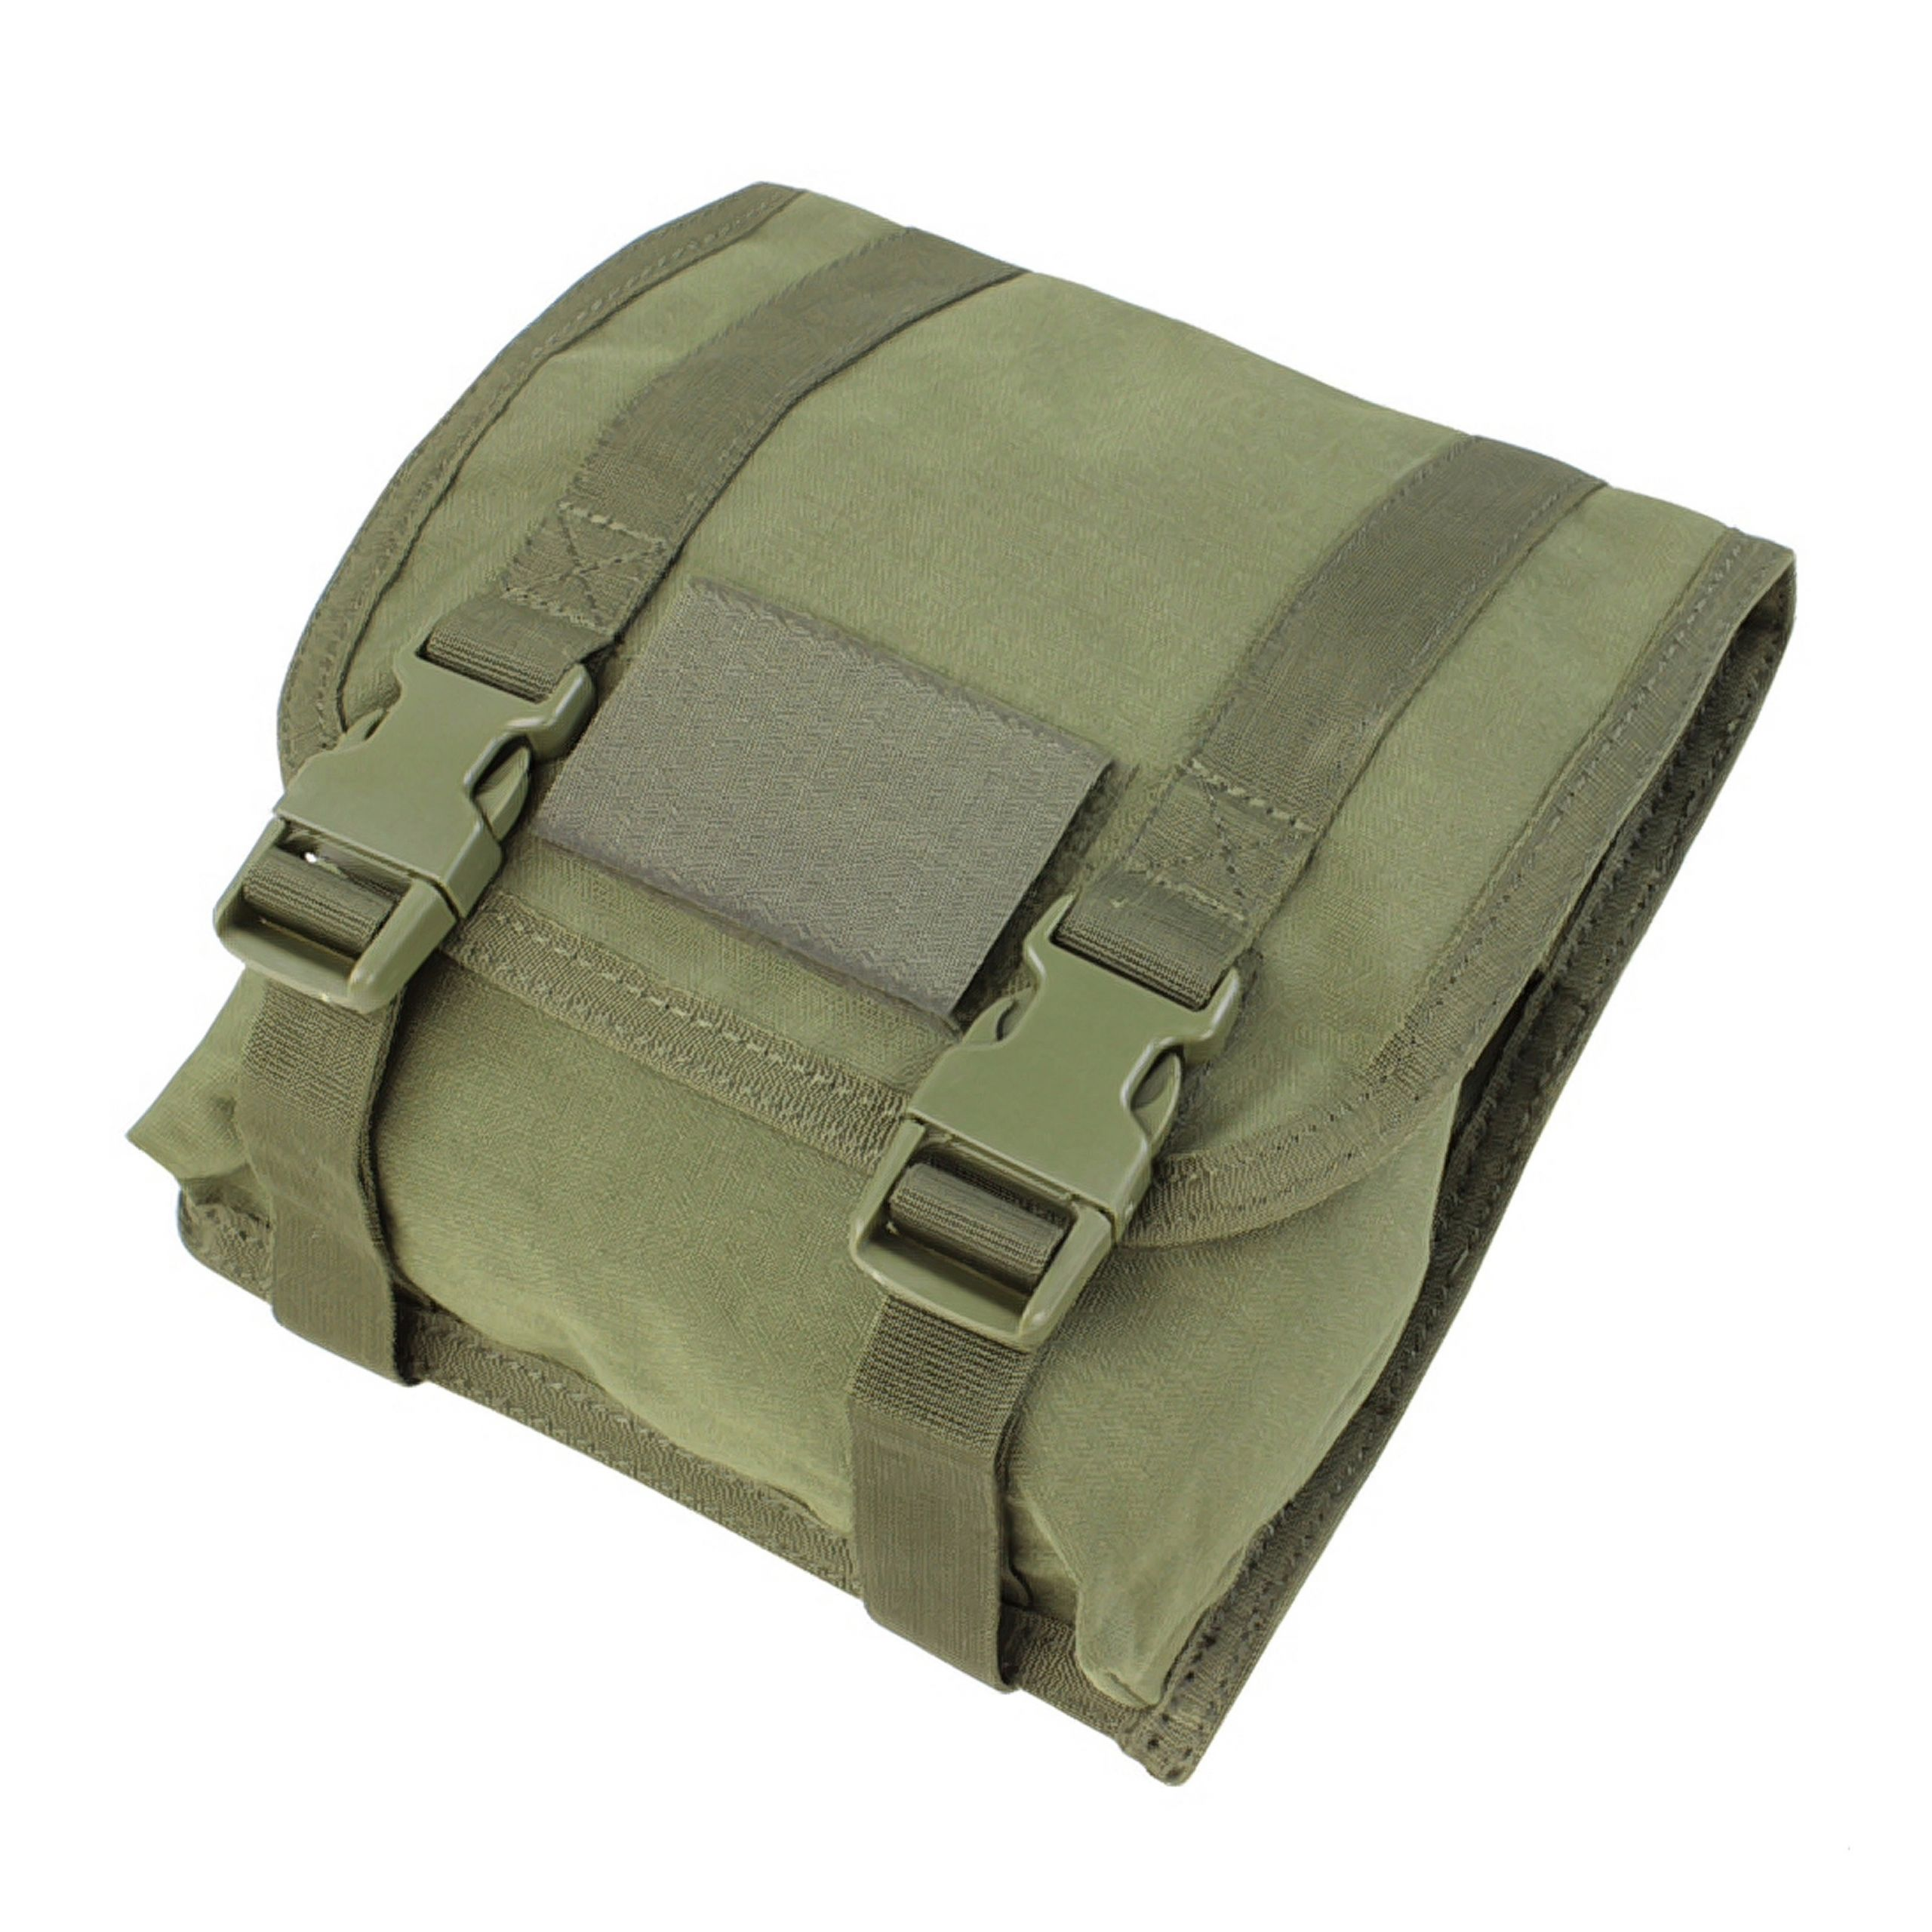 Condor Large Utility Pouch olive